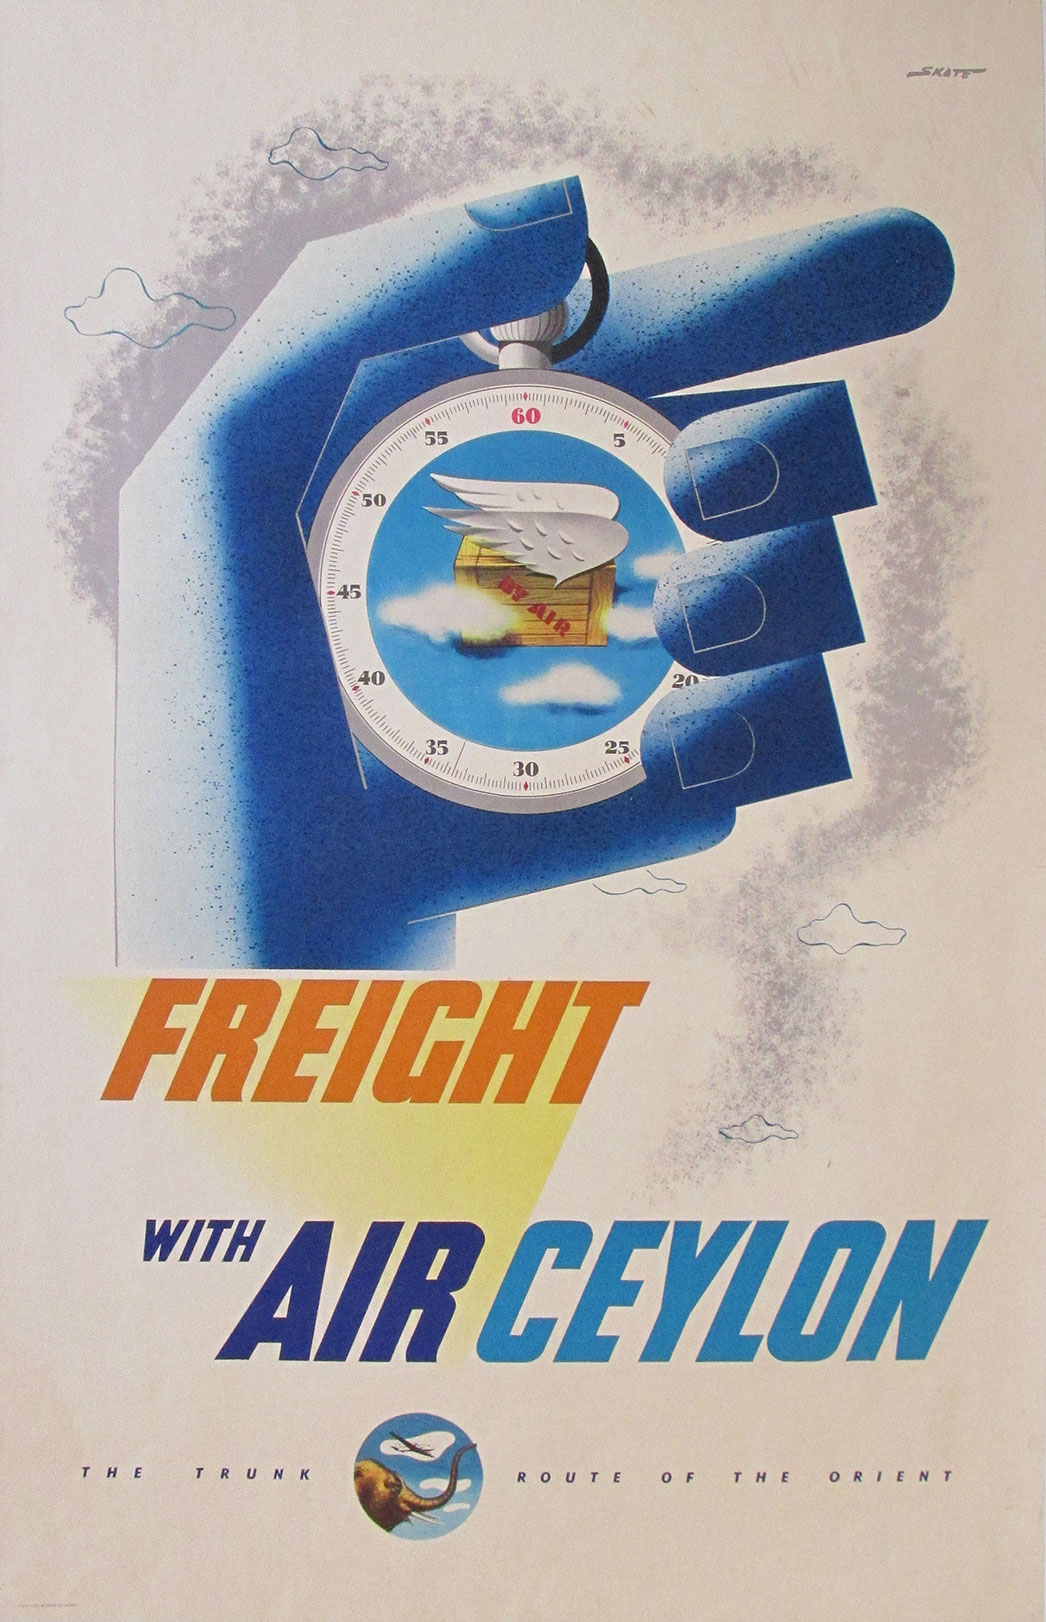 Image for Freight with Air Ceylon - WG00008